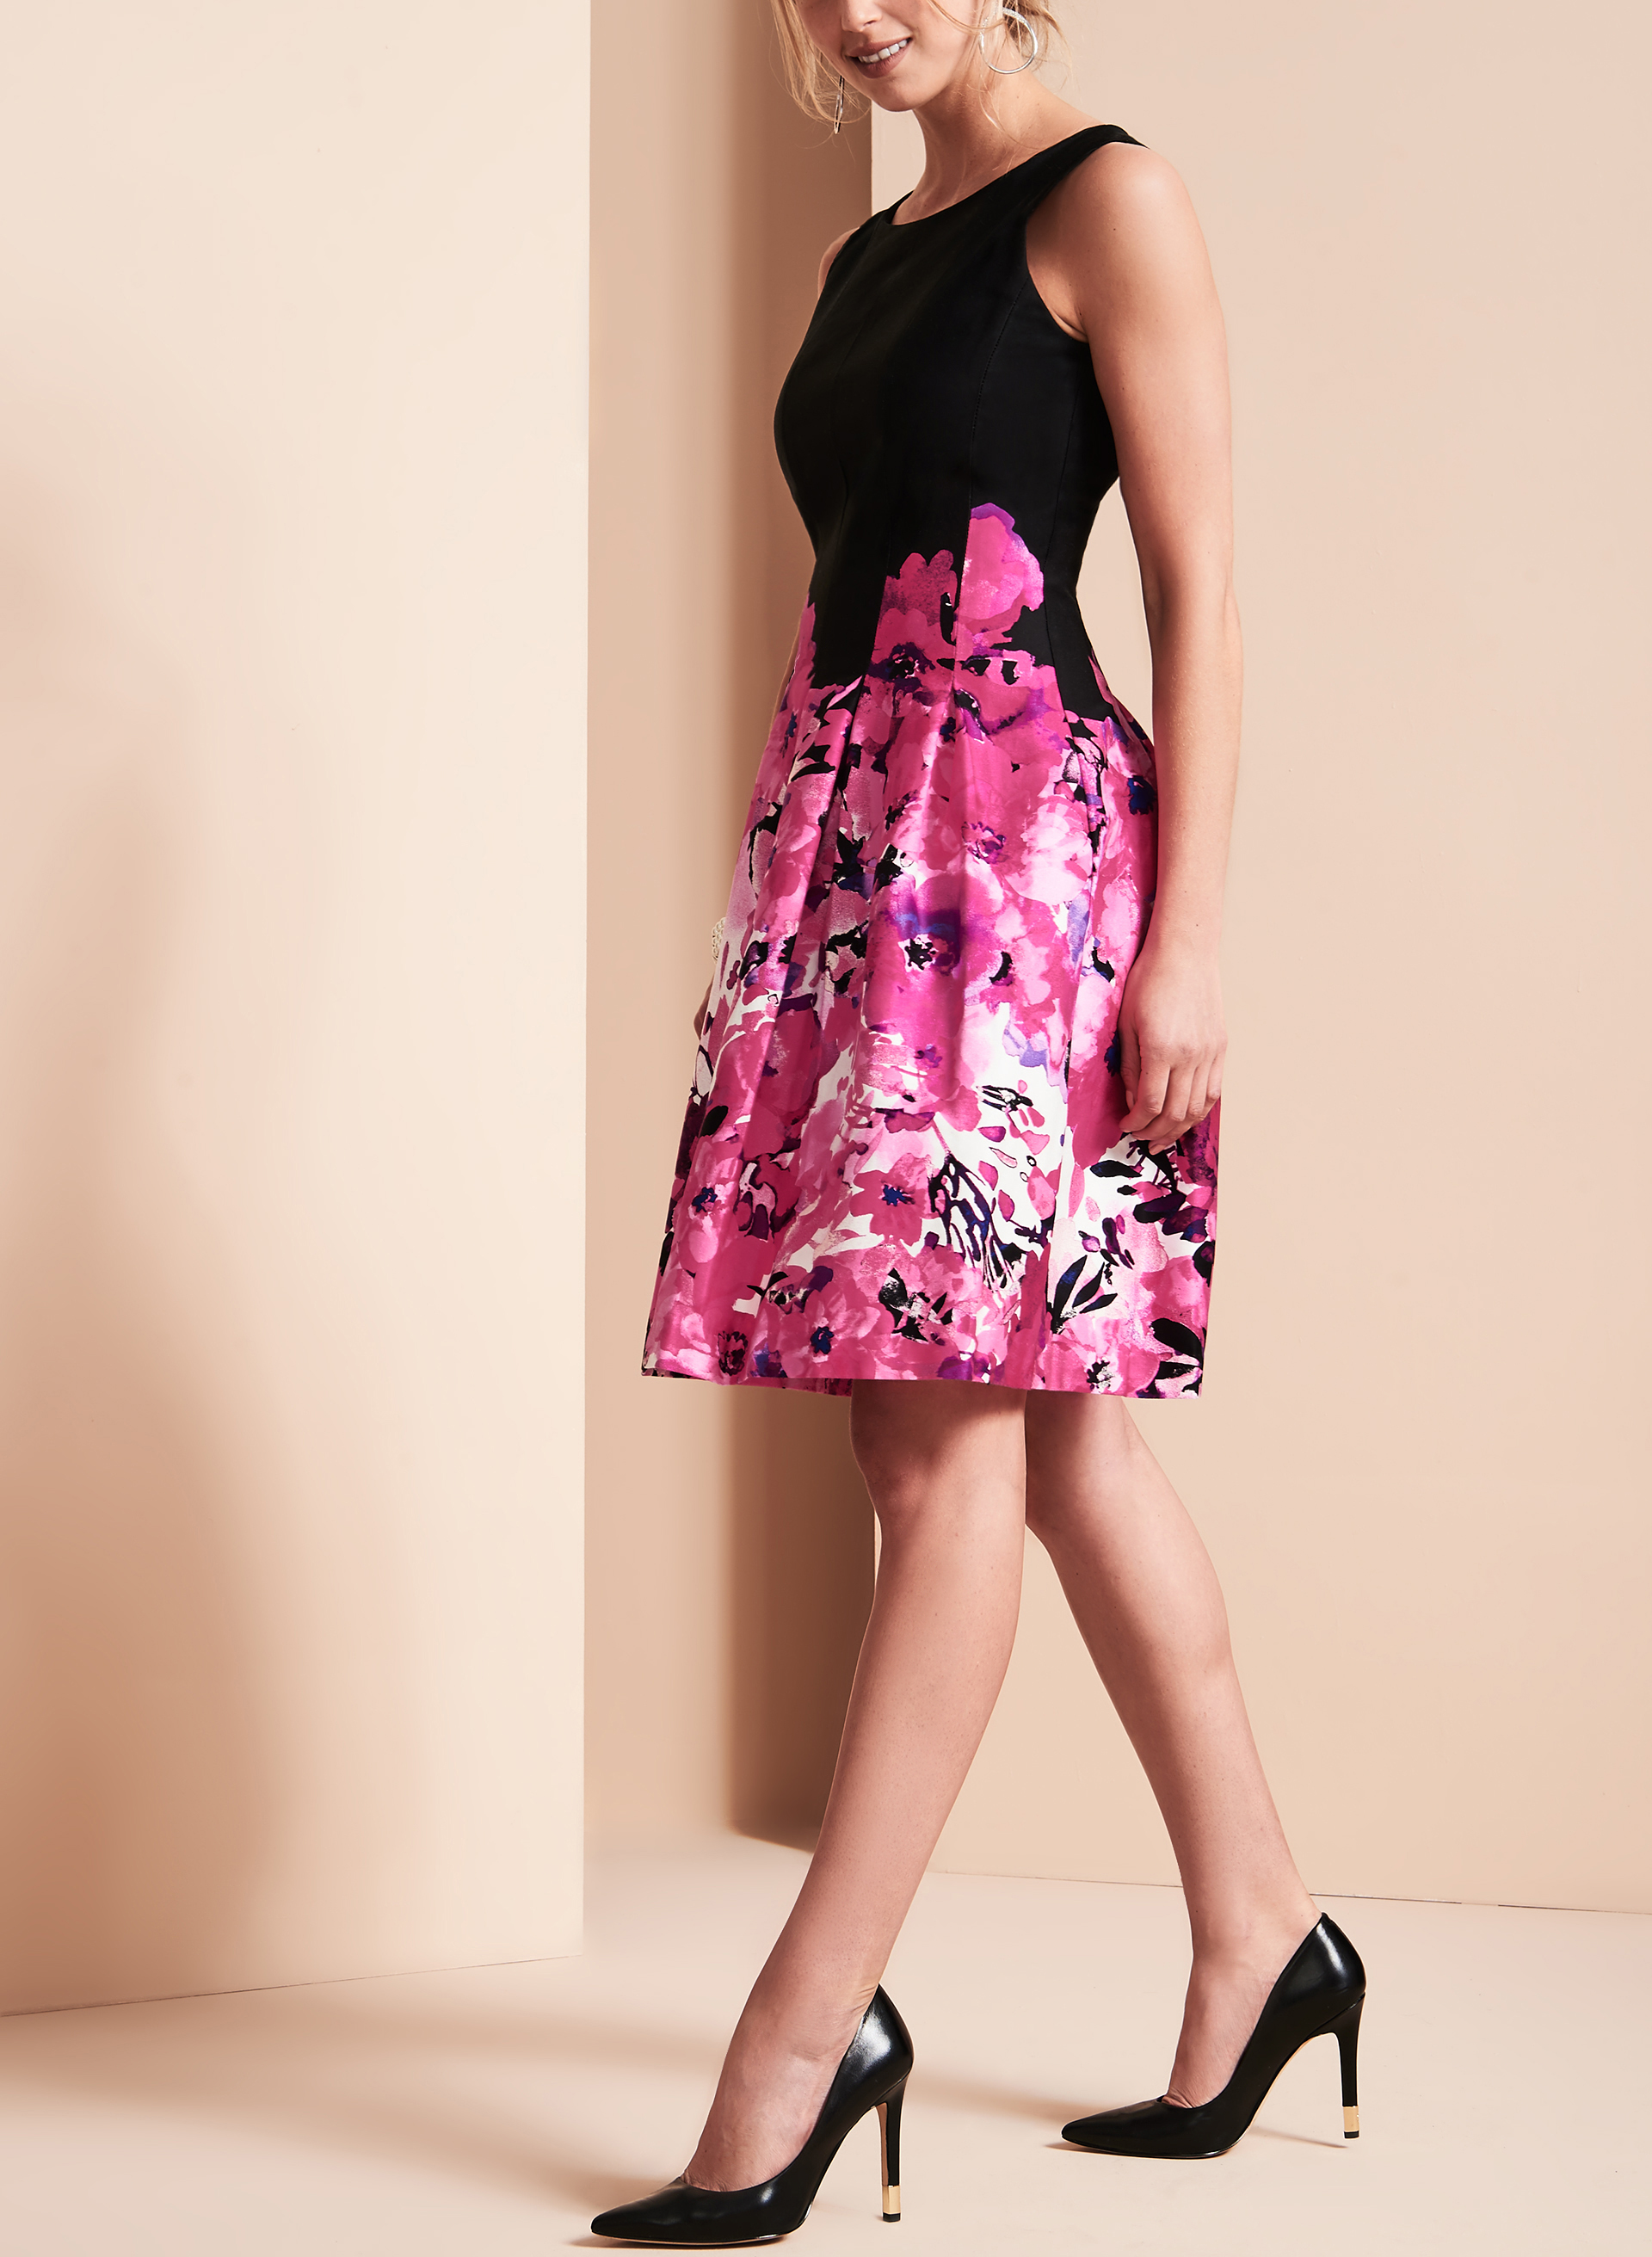 Floral Print Fit Amp Flare Dress Free Shipping Melanie Lyne